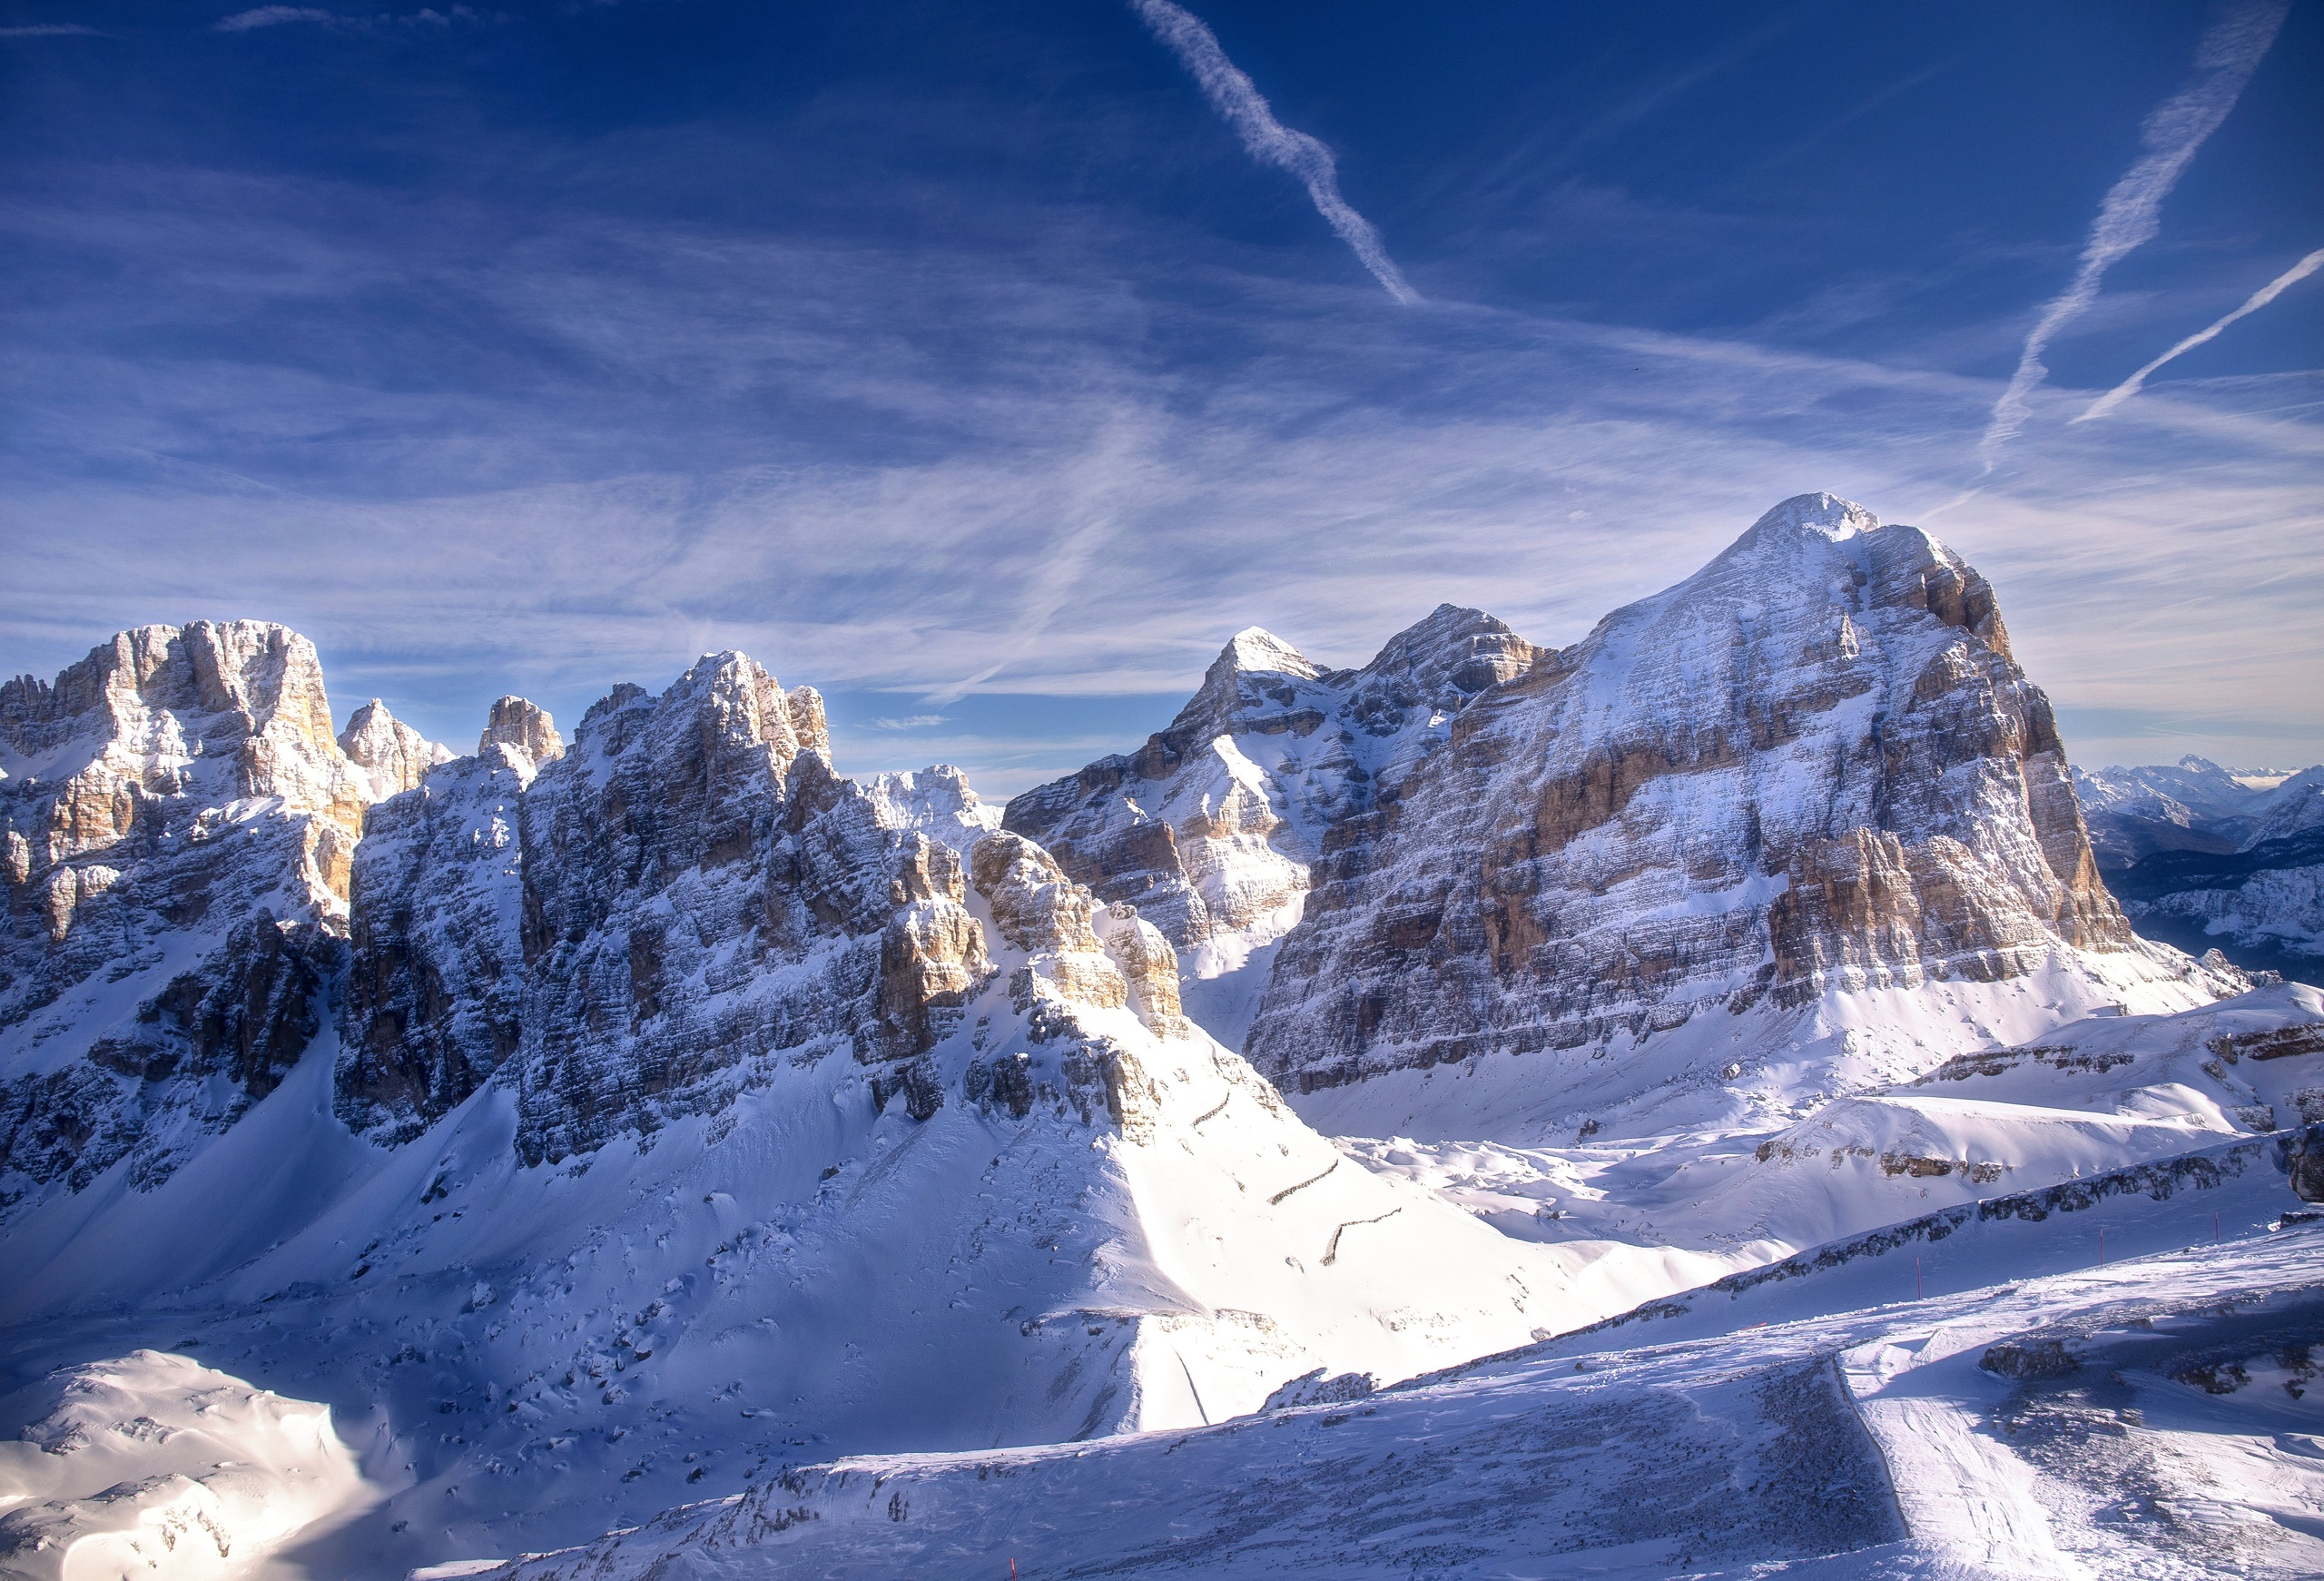 General 2560x1741 Italy mountains snow cold dolomite alps Dolomites (mountains) chemtrails